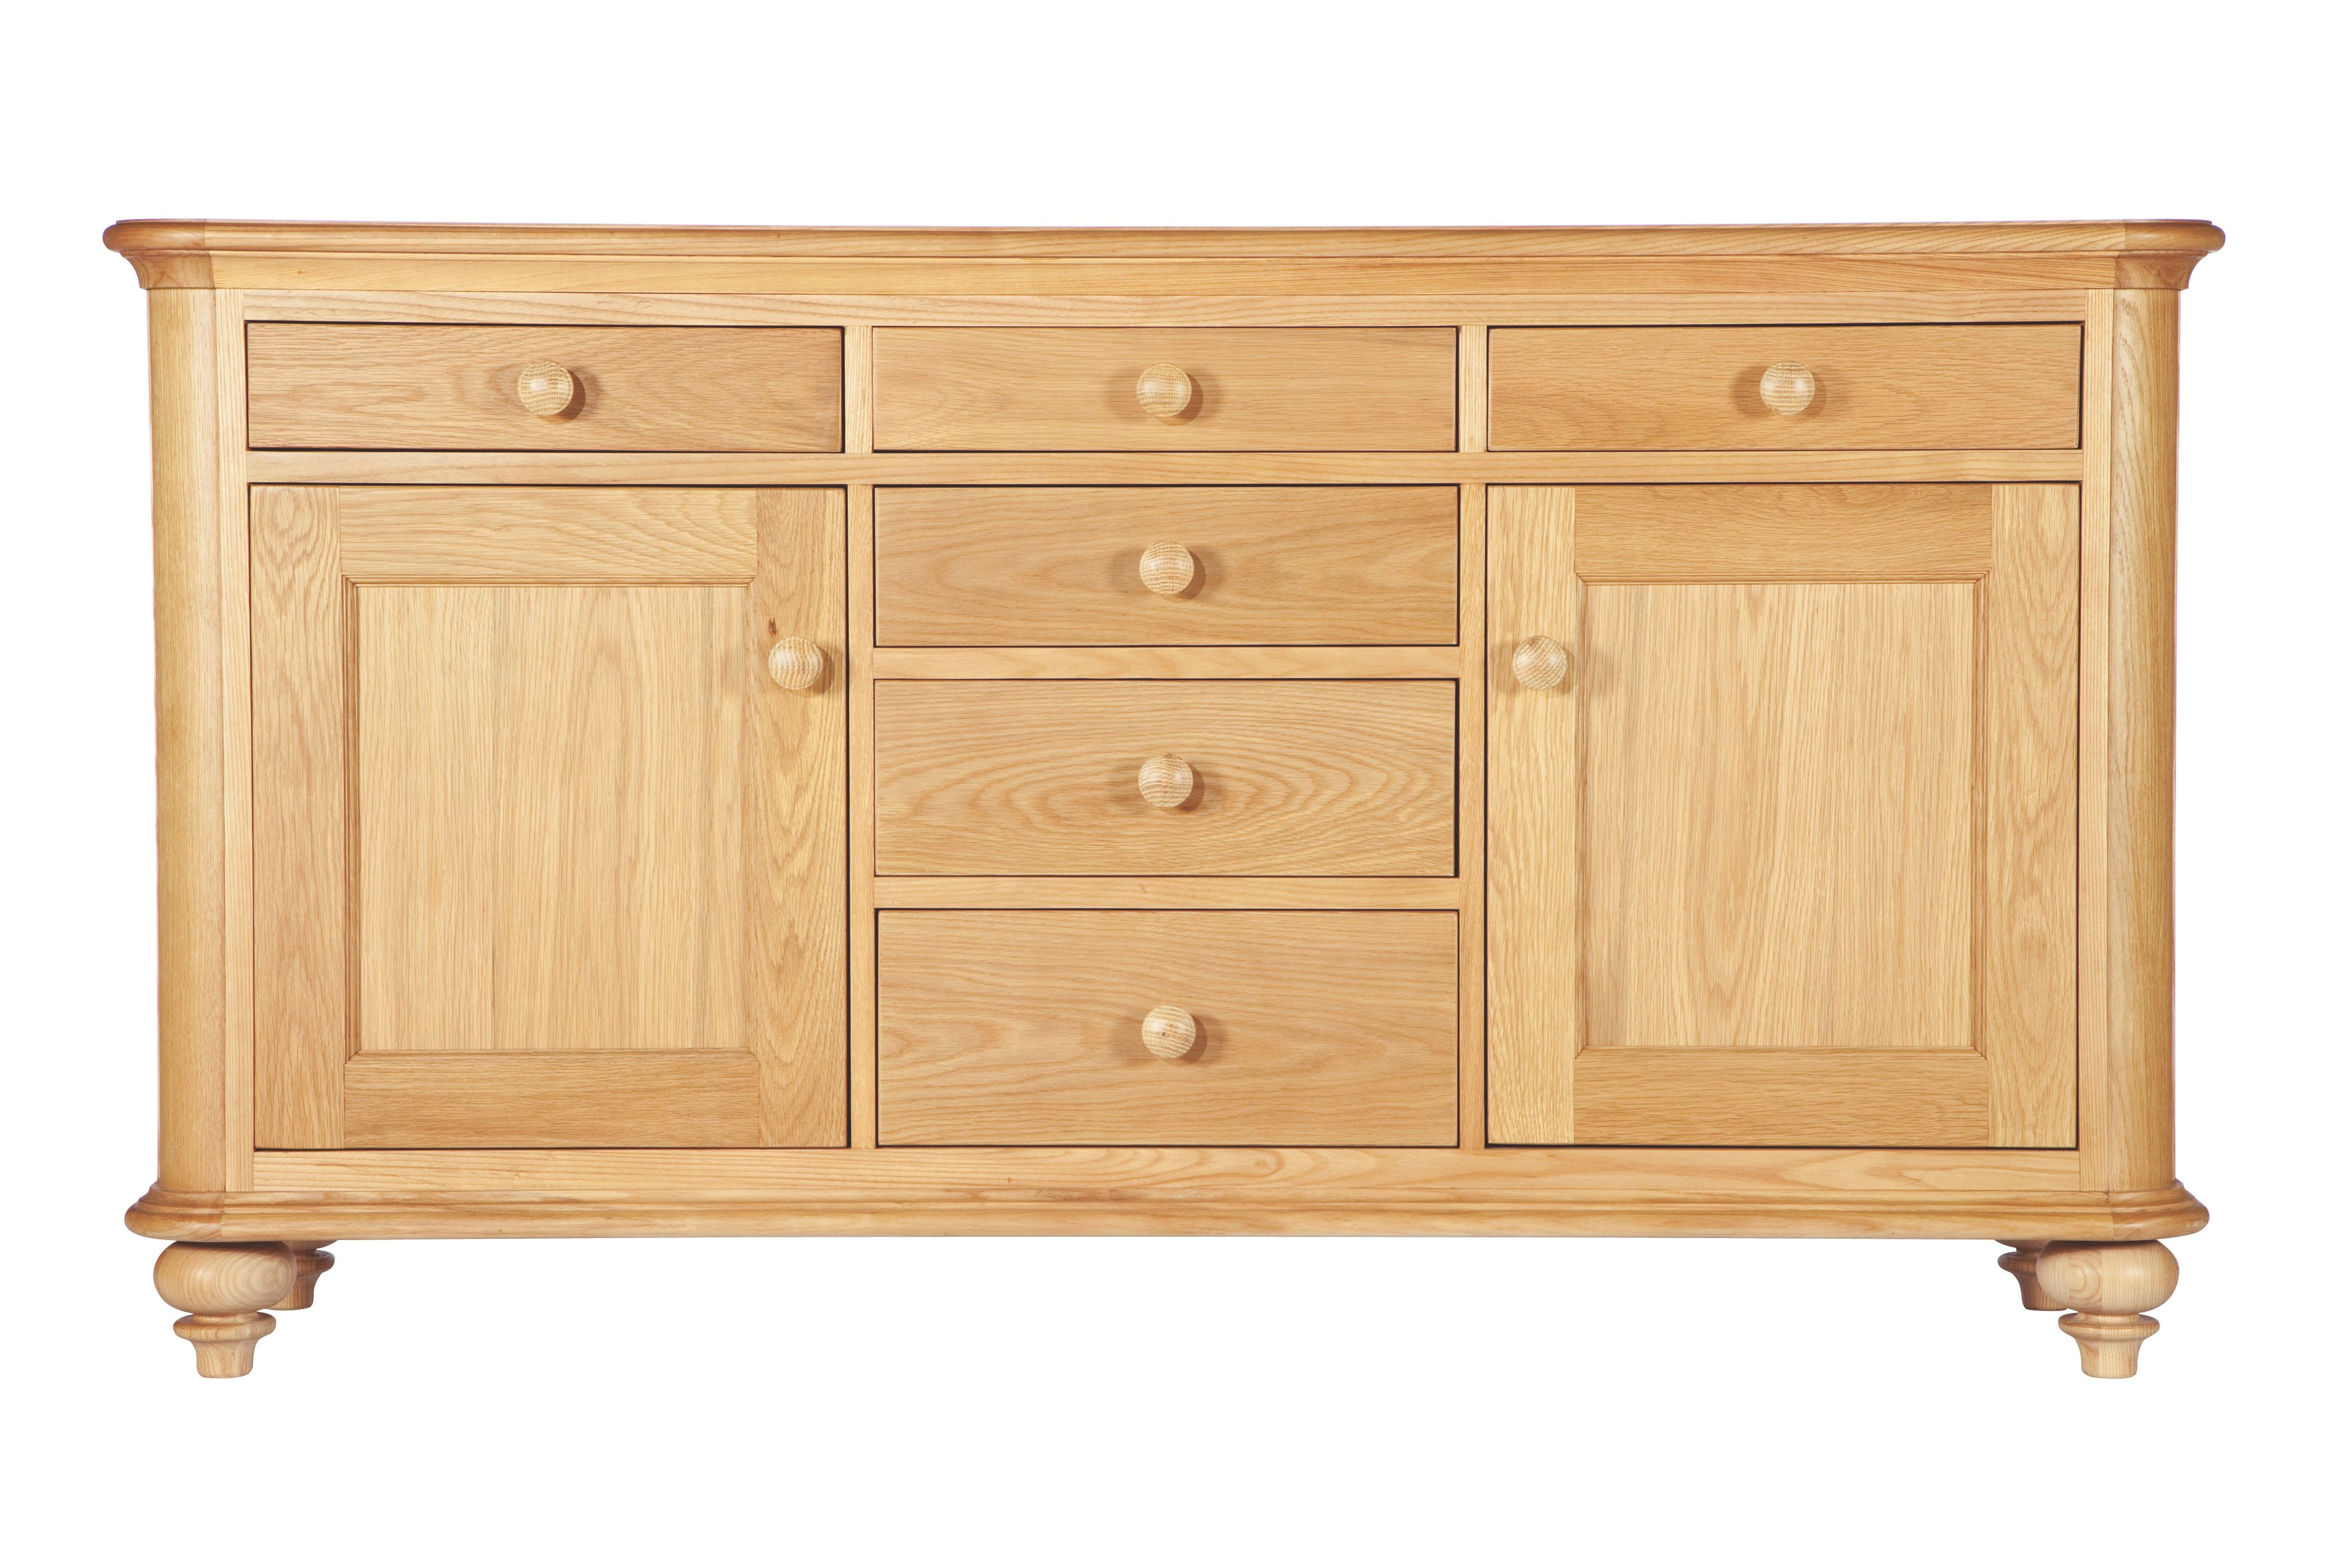 Nora wide sideboard